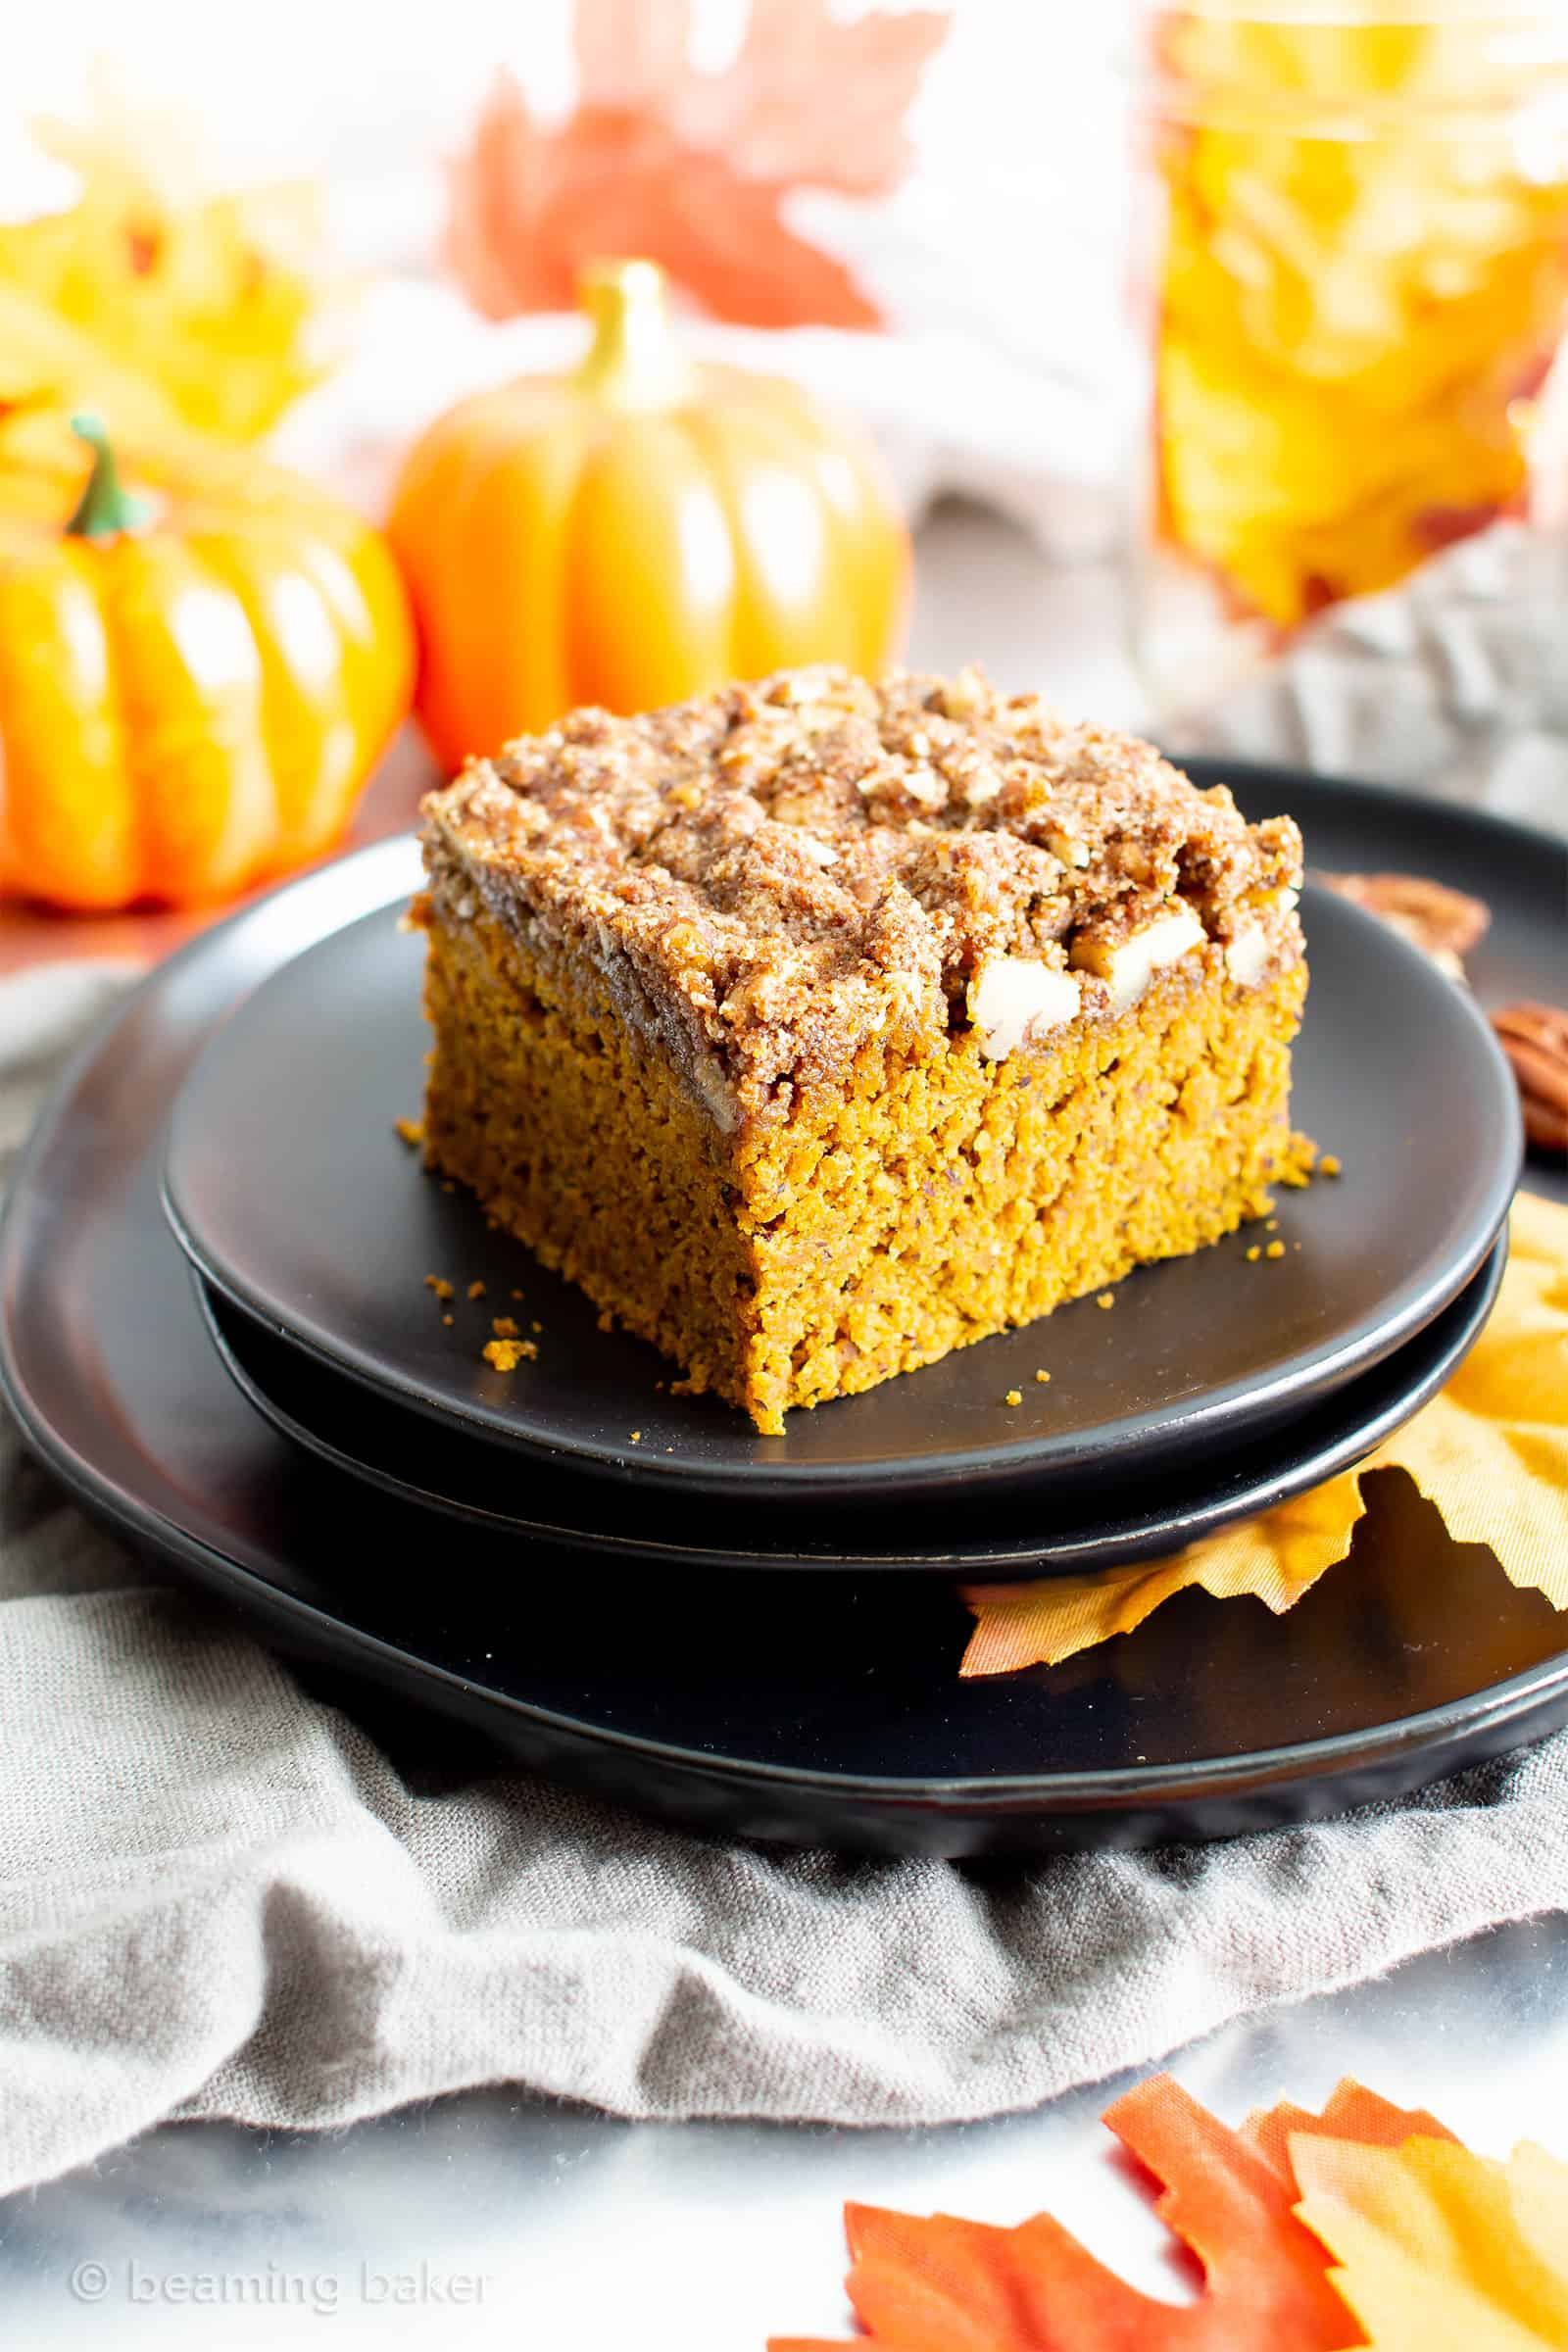 12 Easy Vegan Thanksgiving Dessert Recipes (GF): this year, gather round these amazingly tasty + wonderfully easy vegan thanksgiving dessert recipes! Featuring pumpkin bread, apple crisps, coffee cakes and more! #Vegan #GlutenFree #Thanksgiving #Dessert | Recipes on BeamingBaker.com